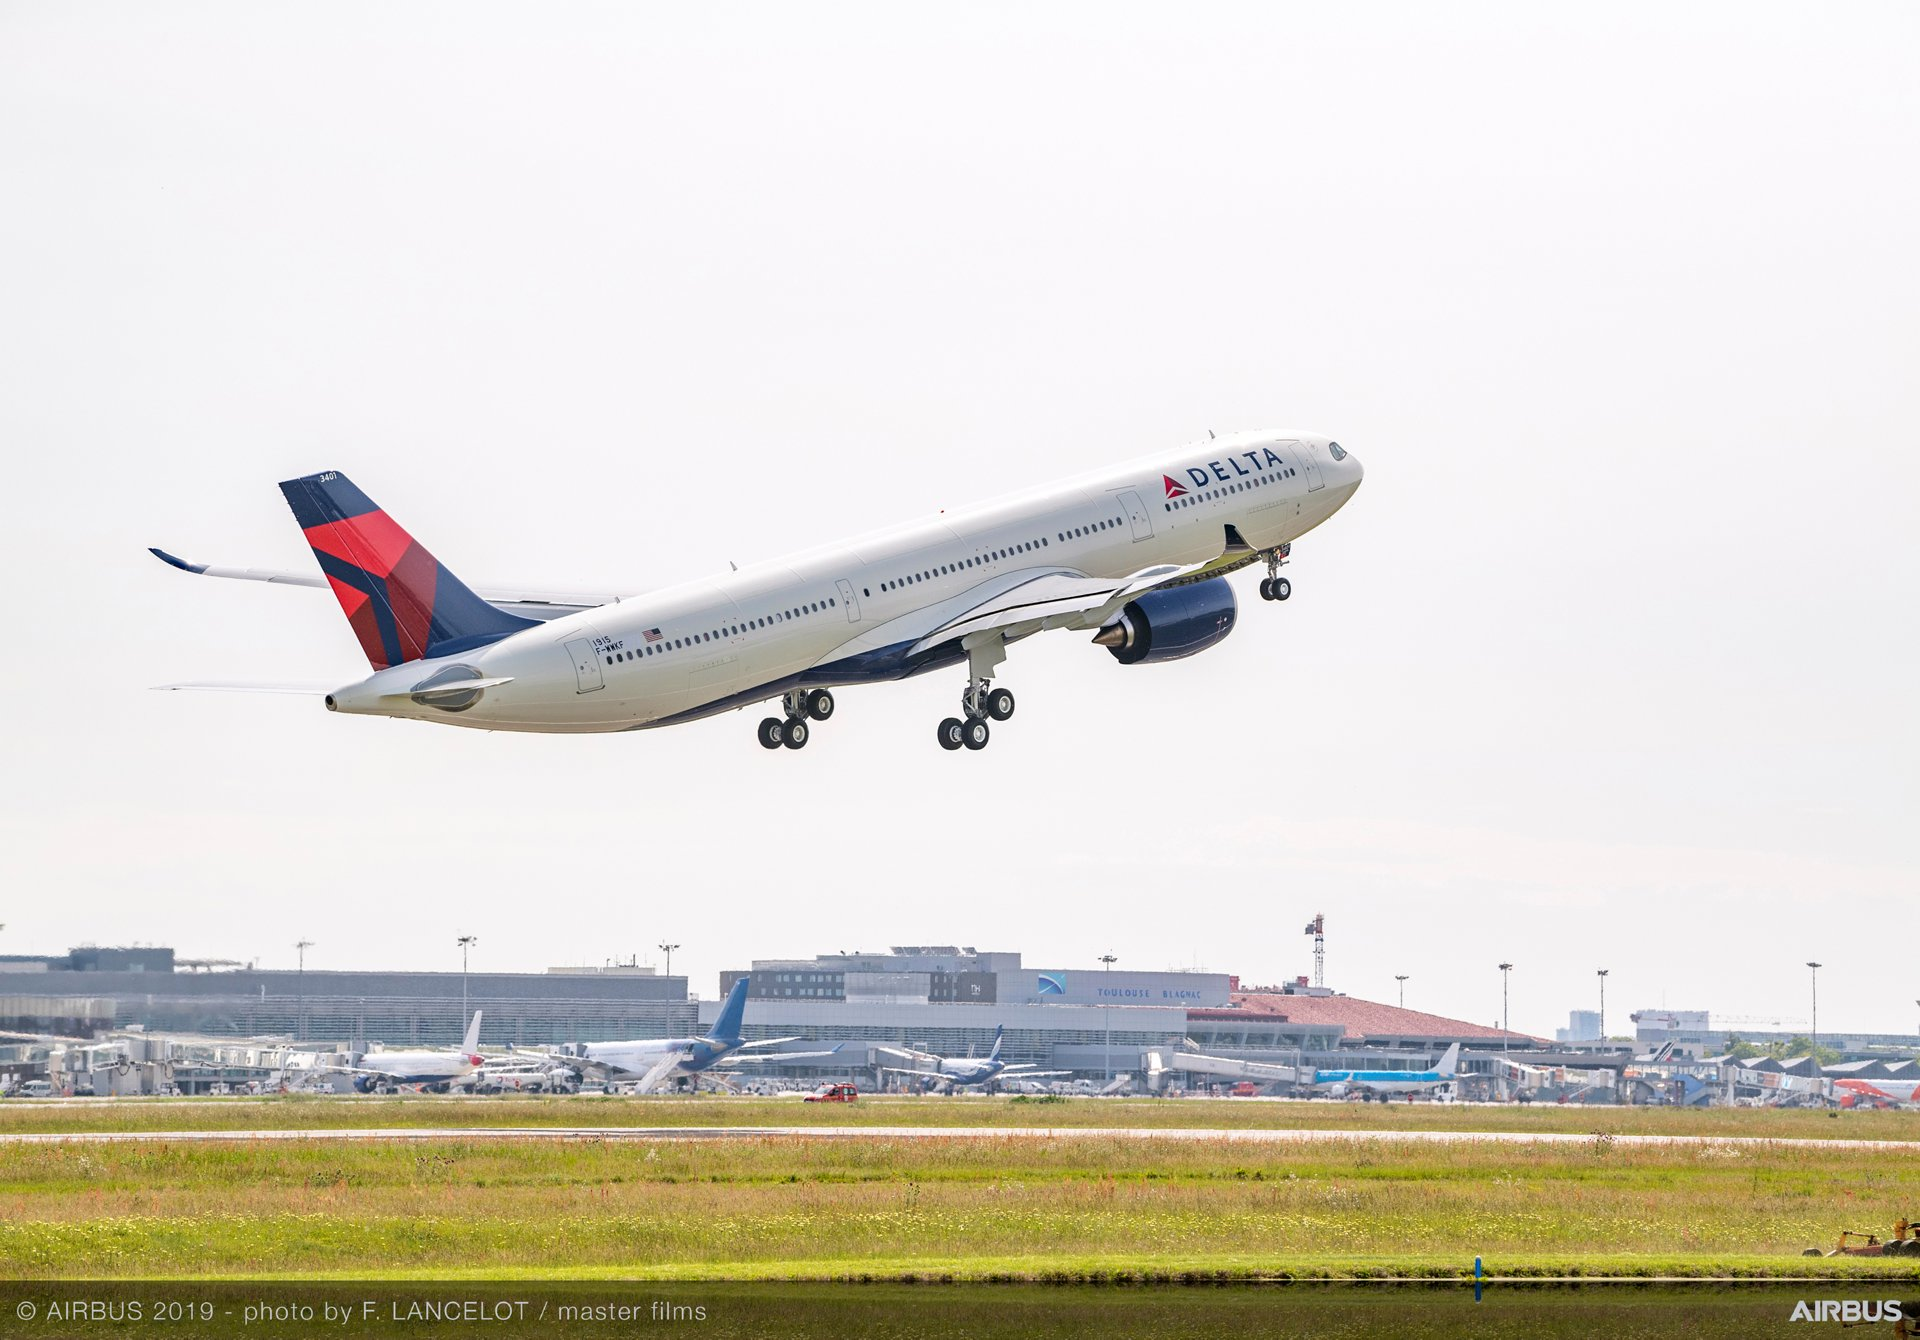 Delta Air Lines' initial A330-900 – the longer-fuselage version of Airbus' A330neo jetliner – performed its first flight from Toulouse-Blagnac Airport in France and was delivered to the operator in May 2019